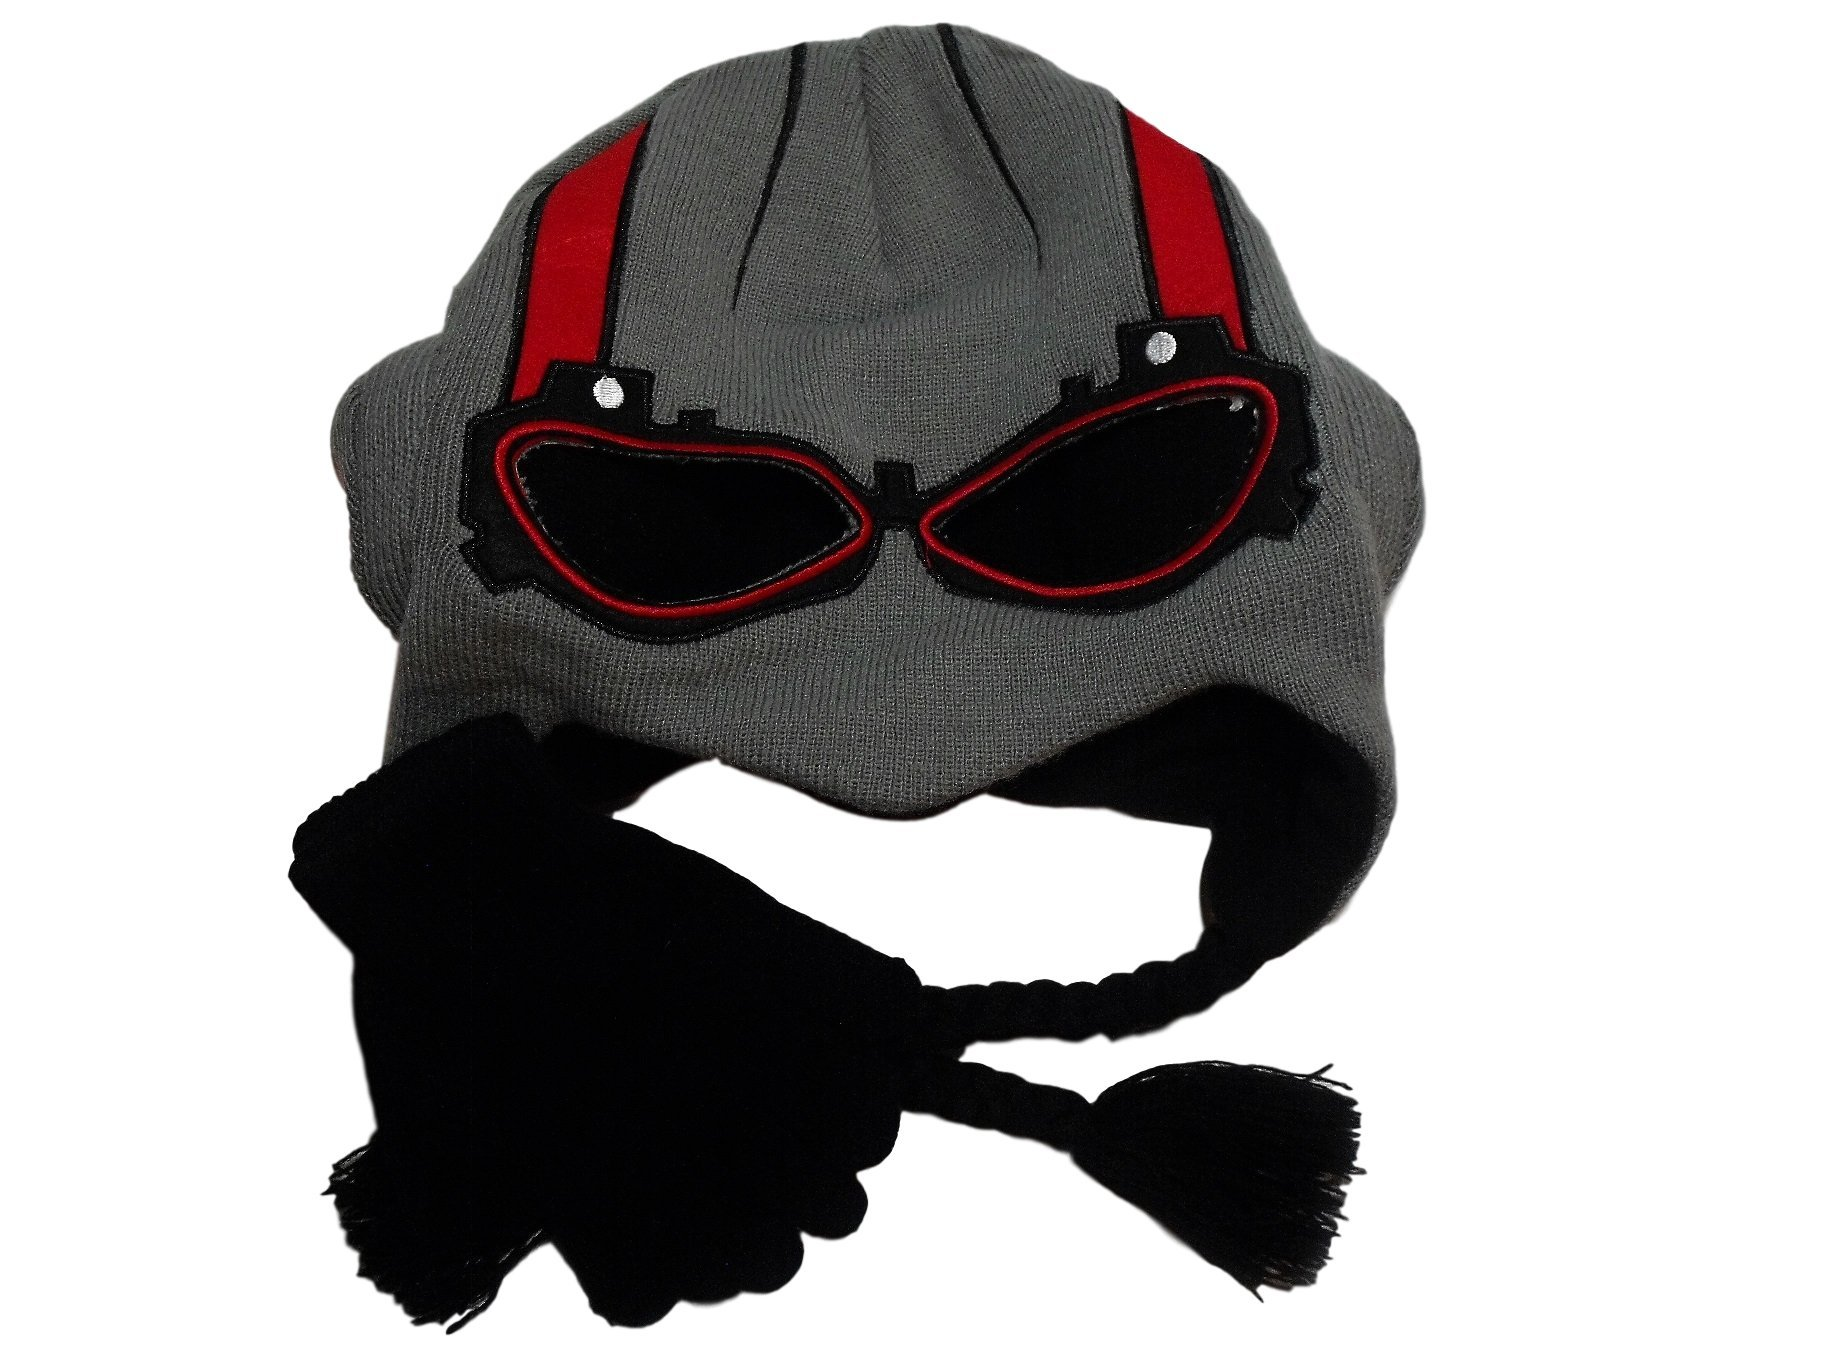 Marvel Ant Man Laplander Peruvian Knit Beanie Hat Black Gloves Set by Concept One Accessories